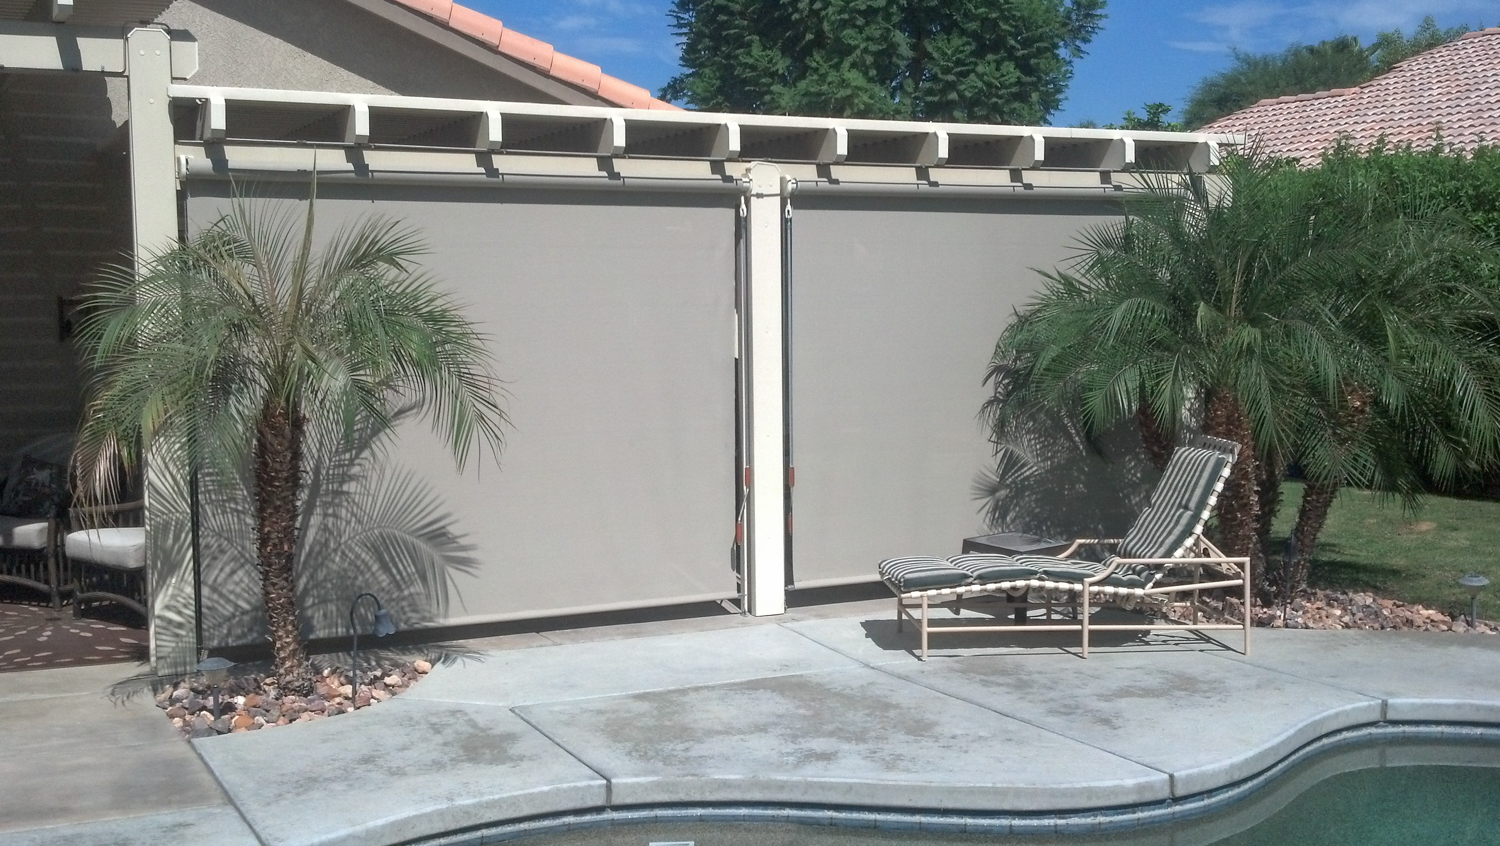 Multiple Drop Screens to Shade Covered Patio, 92262